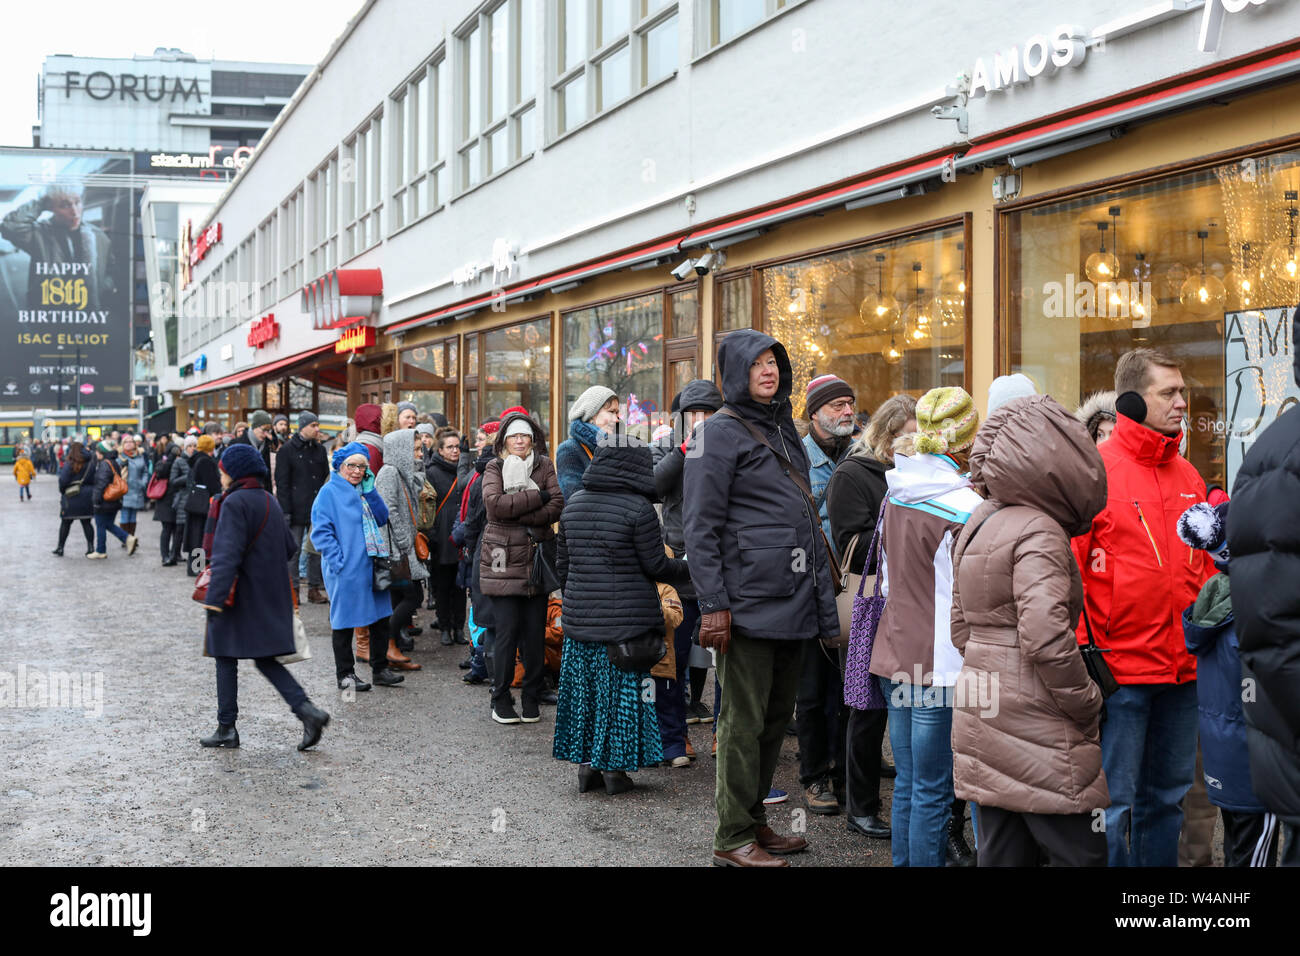 People queueing for teamLab exhibition in Amos Rex art museum in Helsinki, Finland Stock Photo